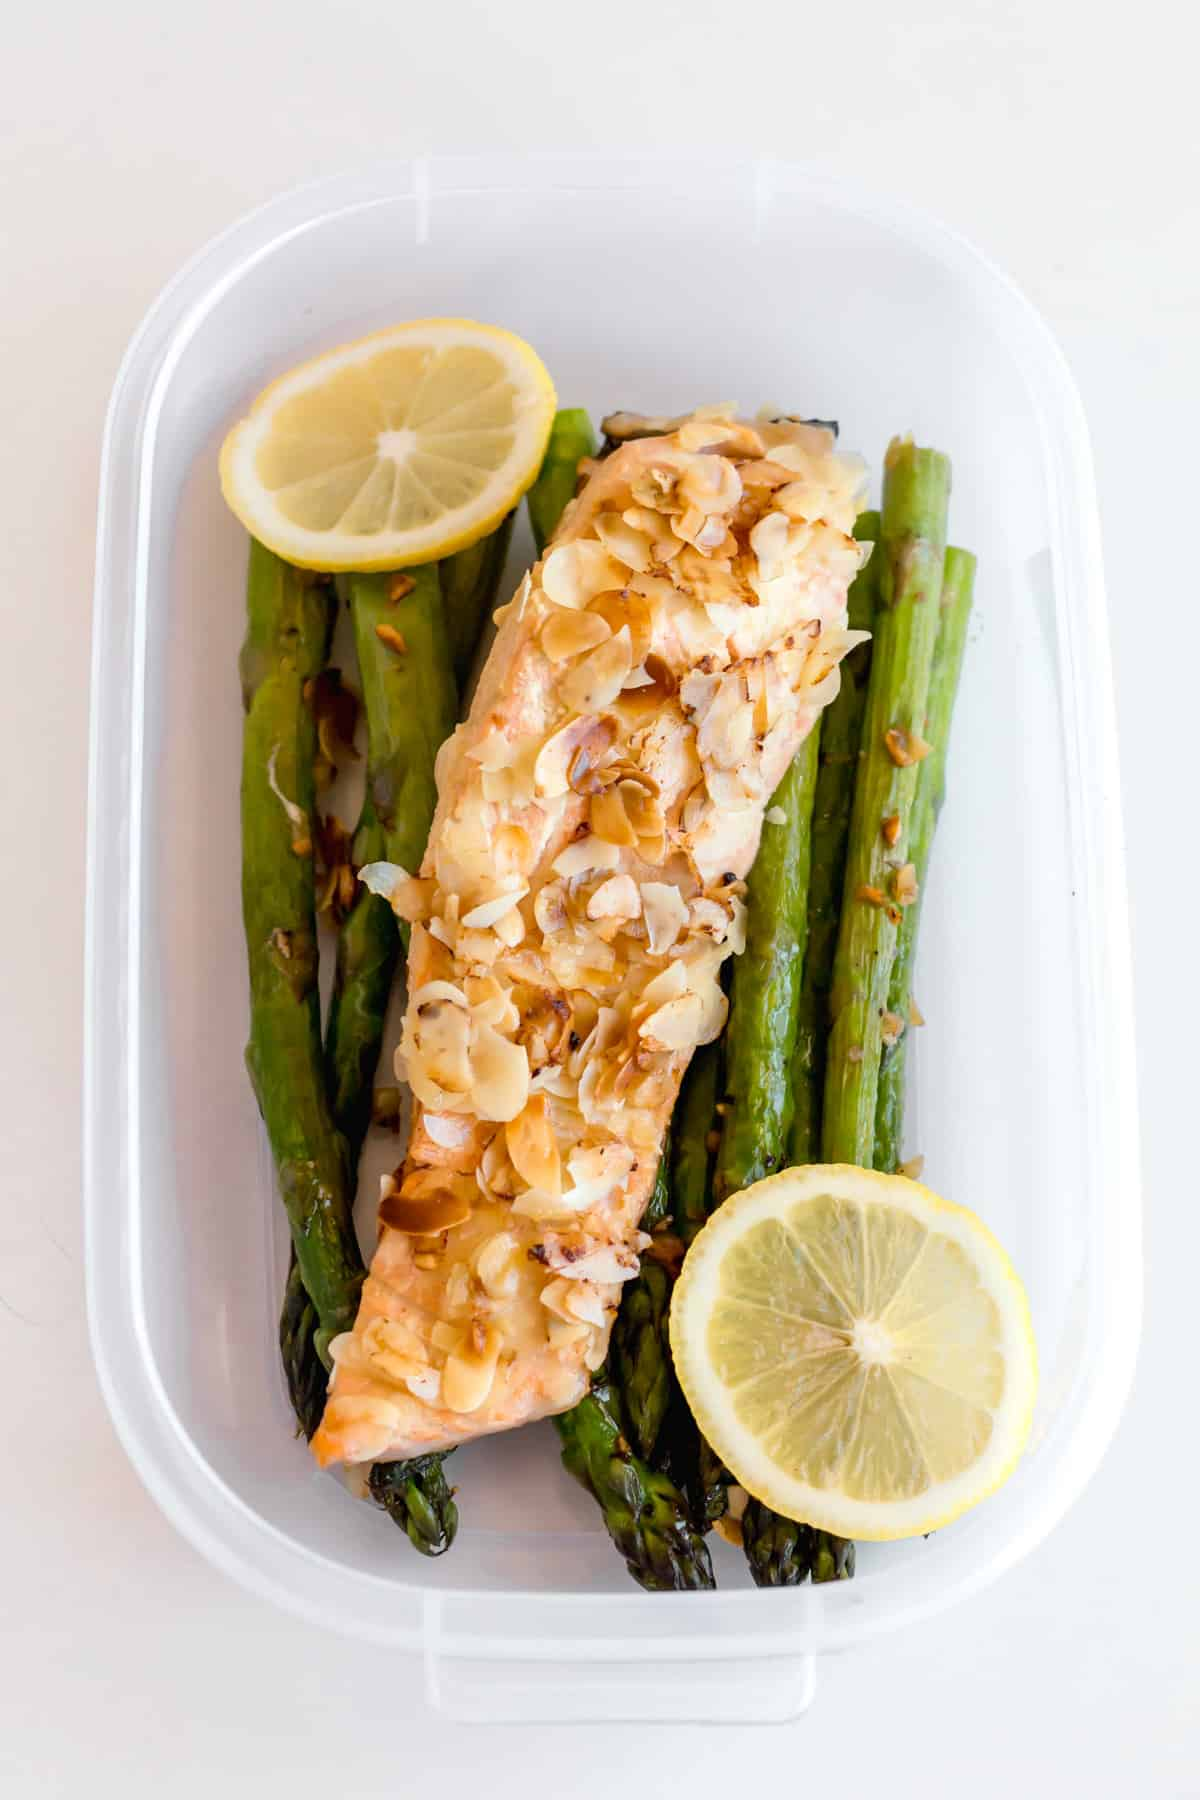 salmon and asparagus in plastic ware to demonstrate easy portable keto lunch leftovers